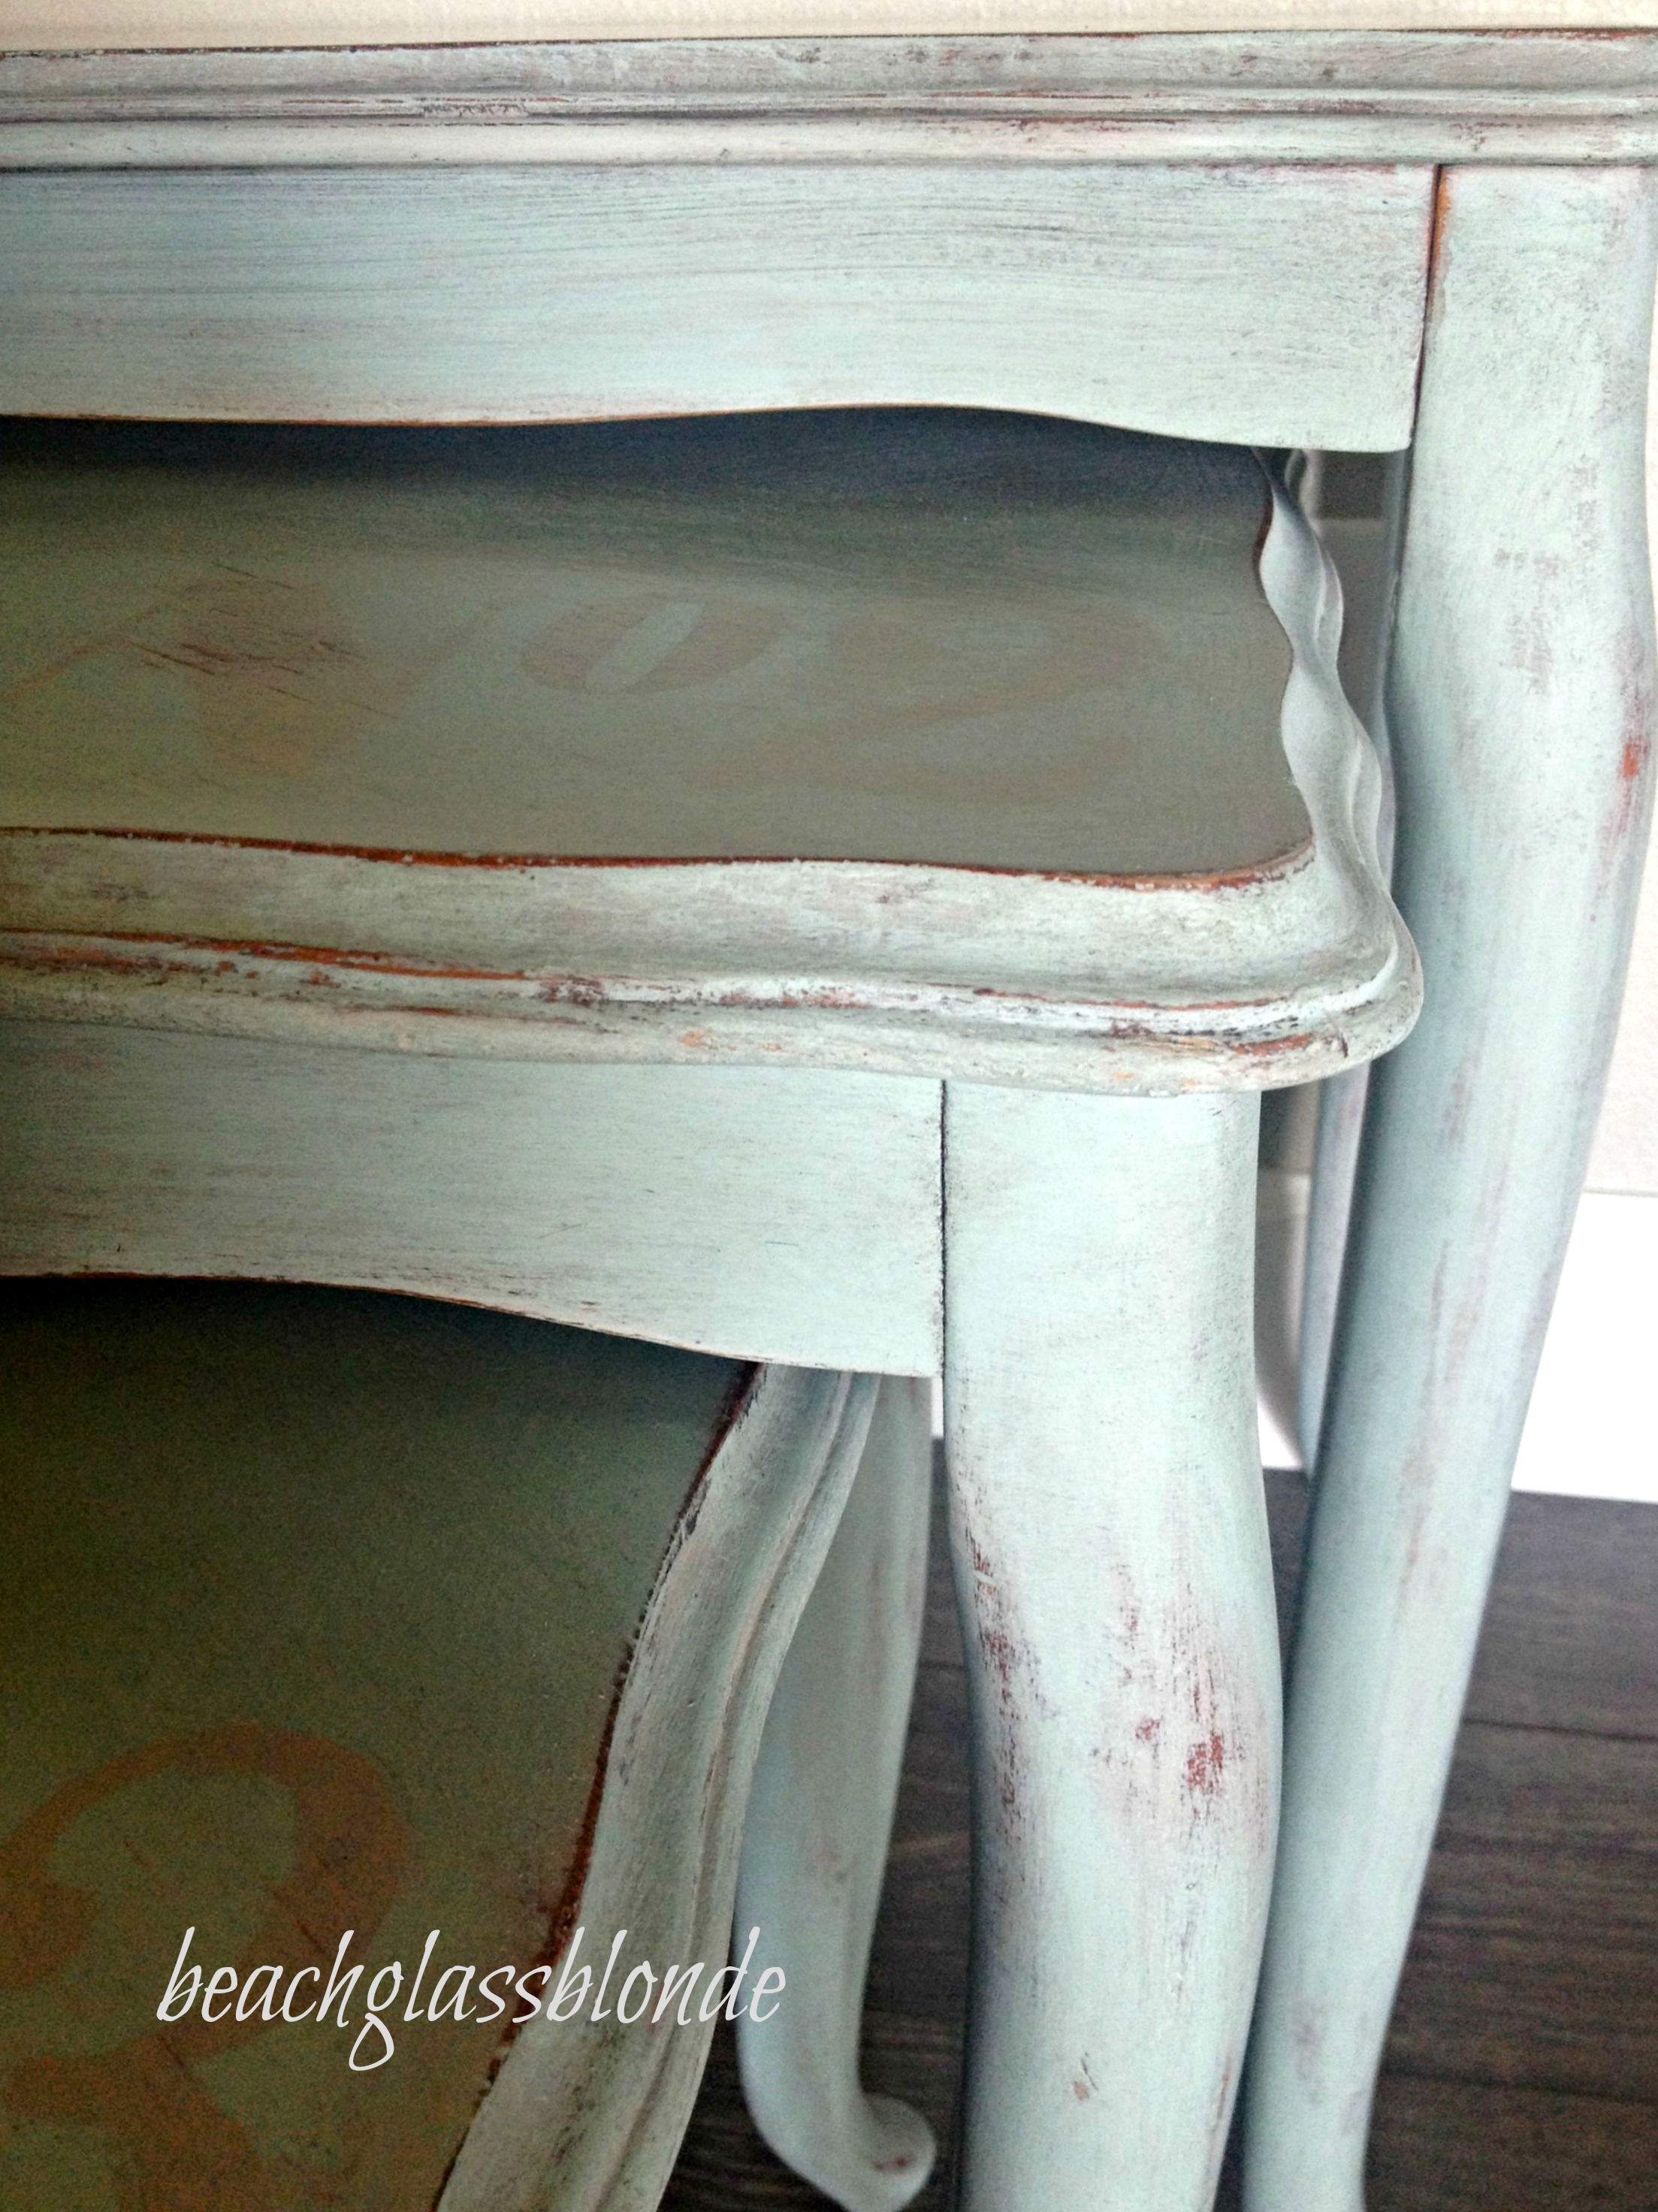 nesting tables 123 closeup